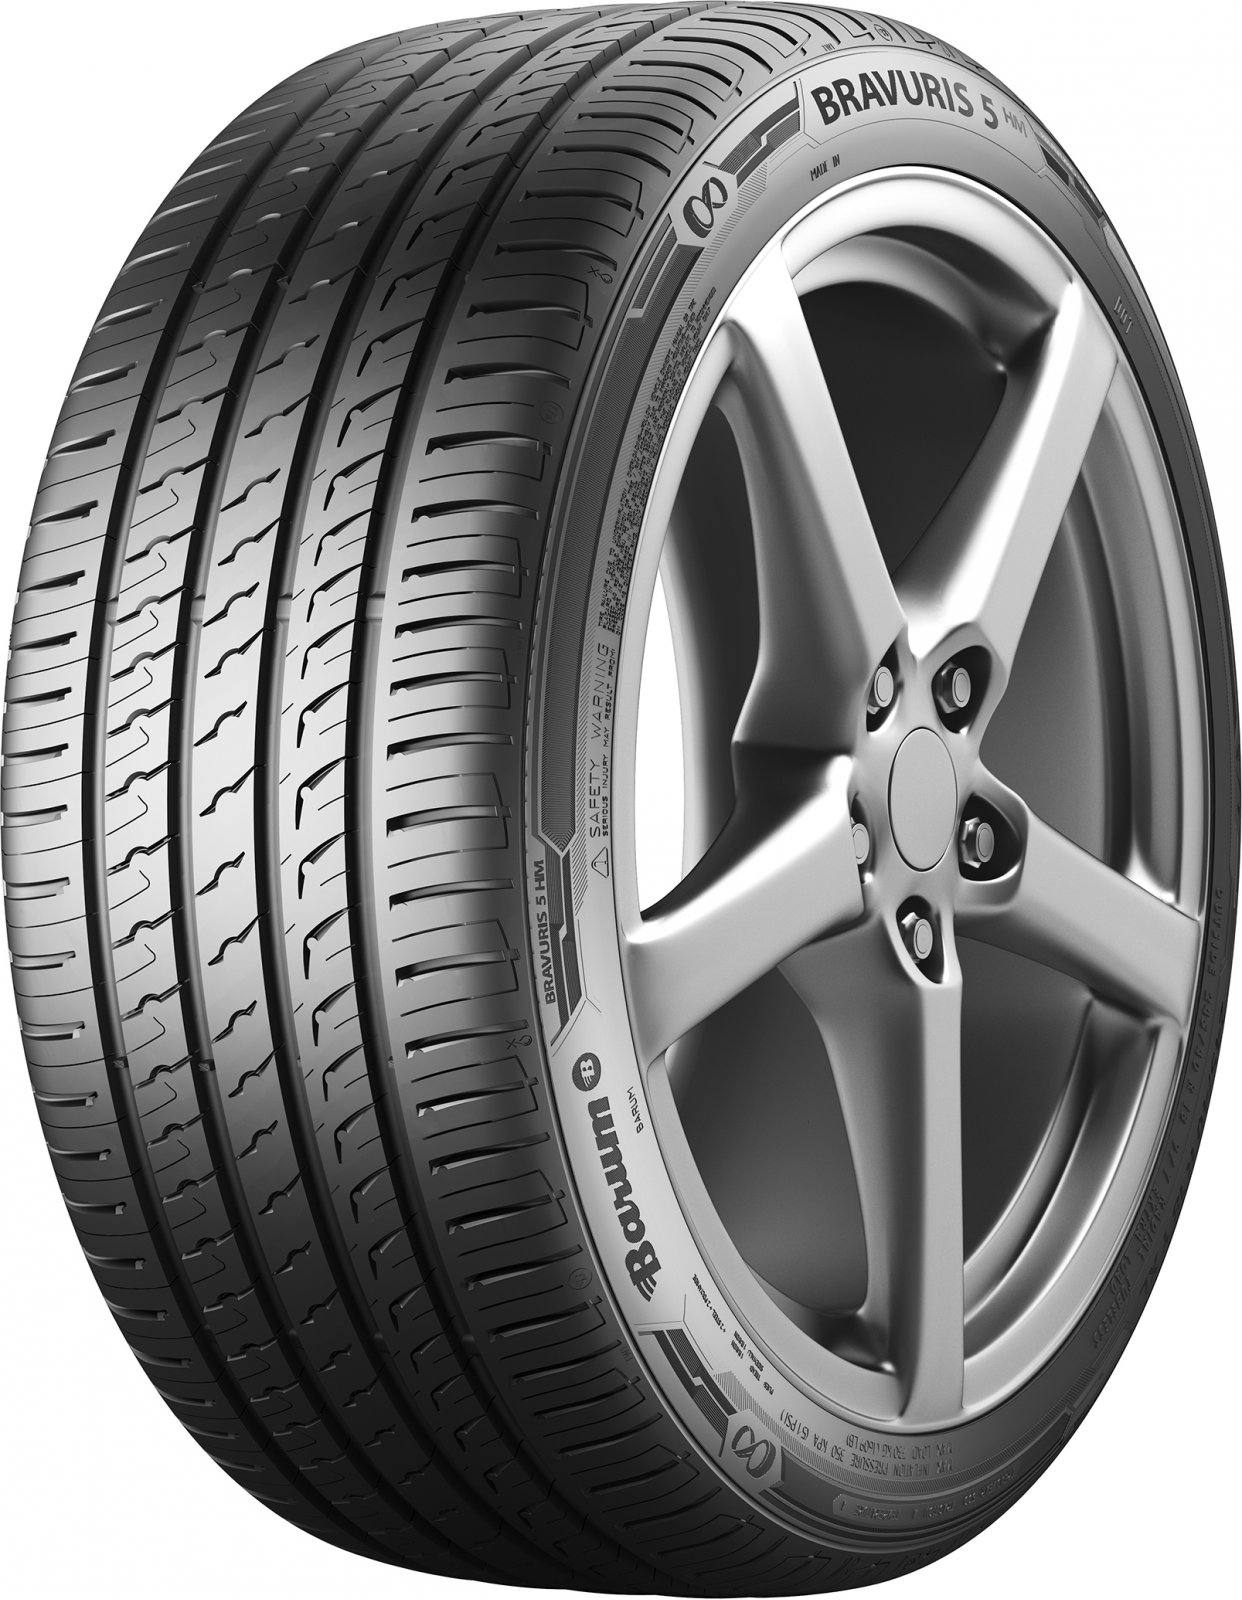 Barum 235/45 R18 Bravuris 5HM 98Y XL FR